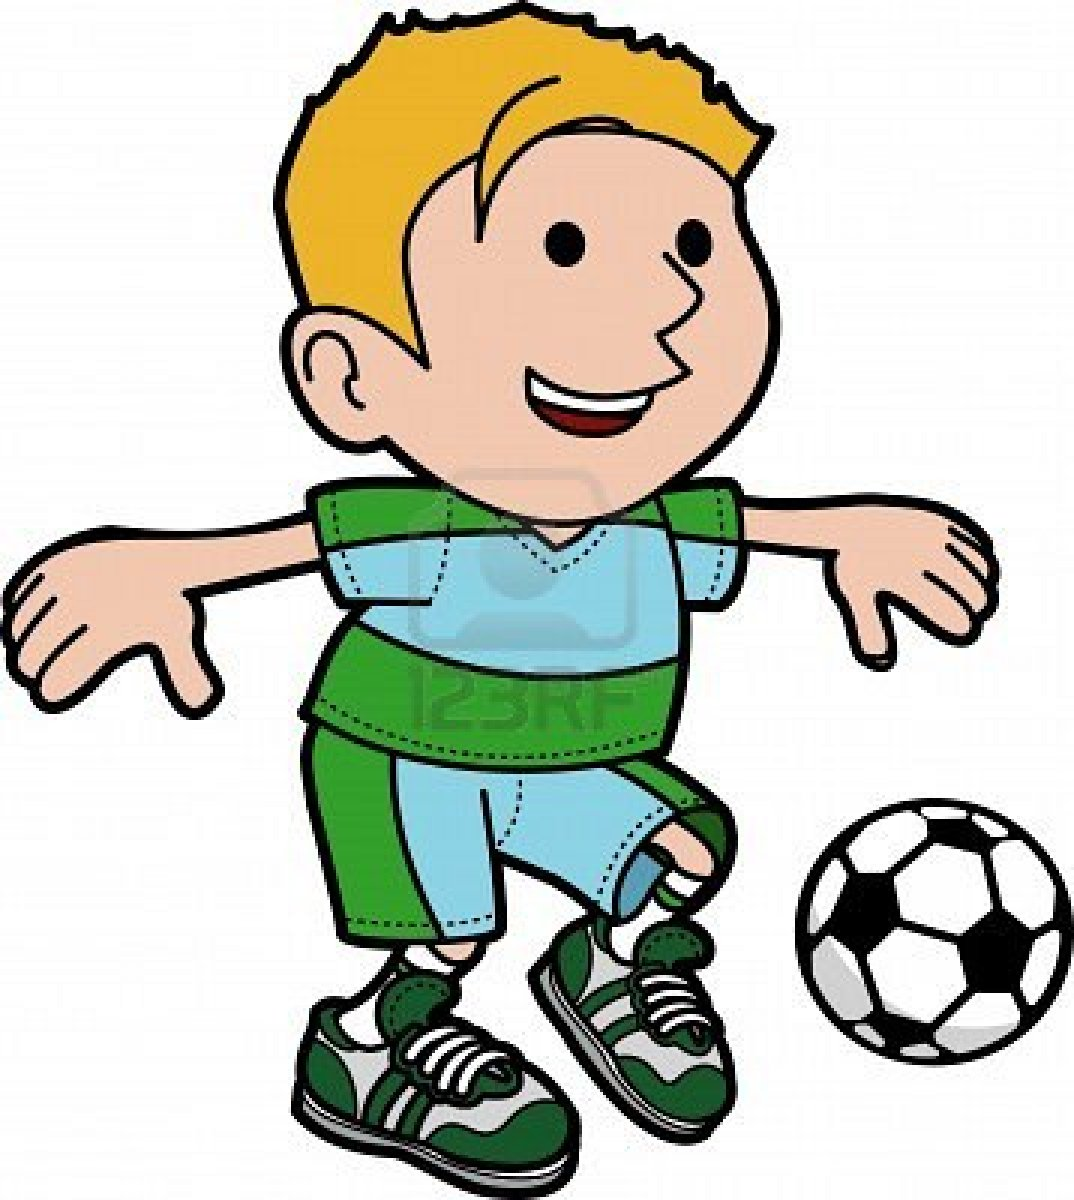 1074x1200 Boy Soccer Ball Clipart, Explore Pictures